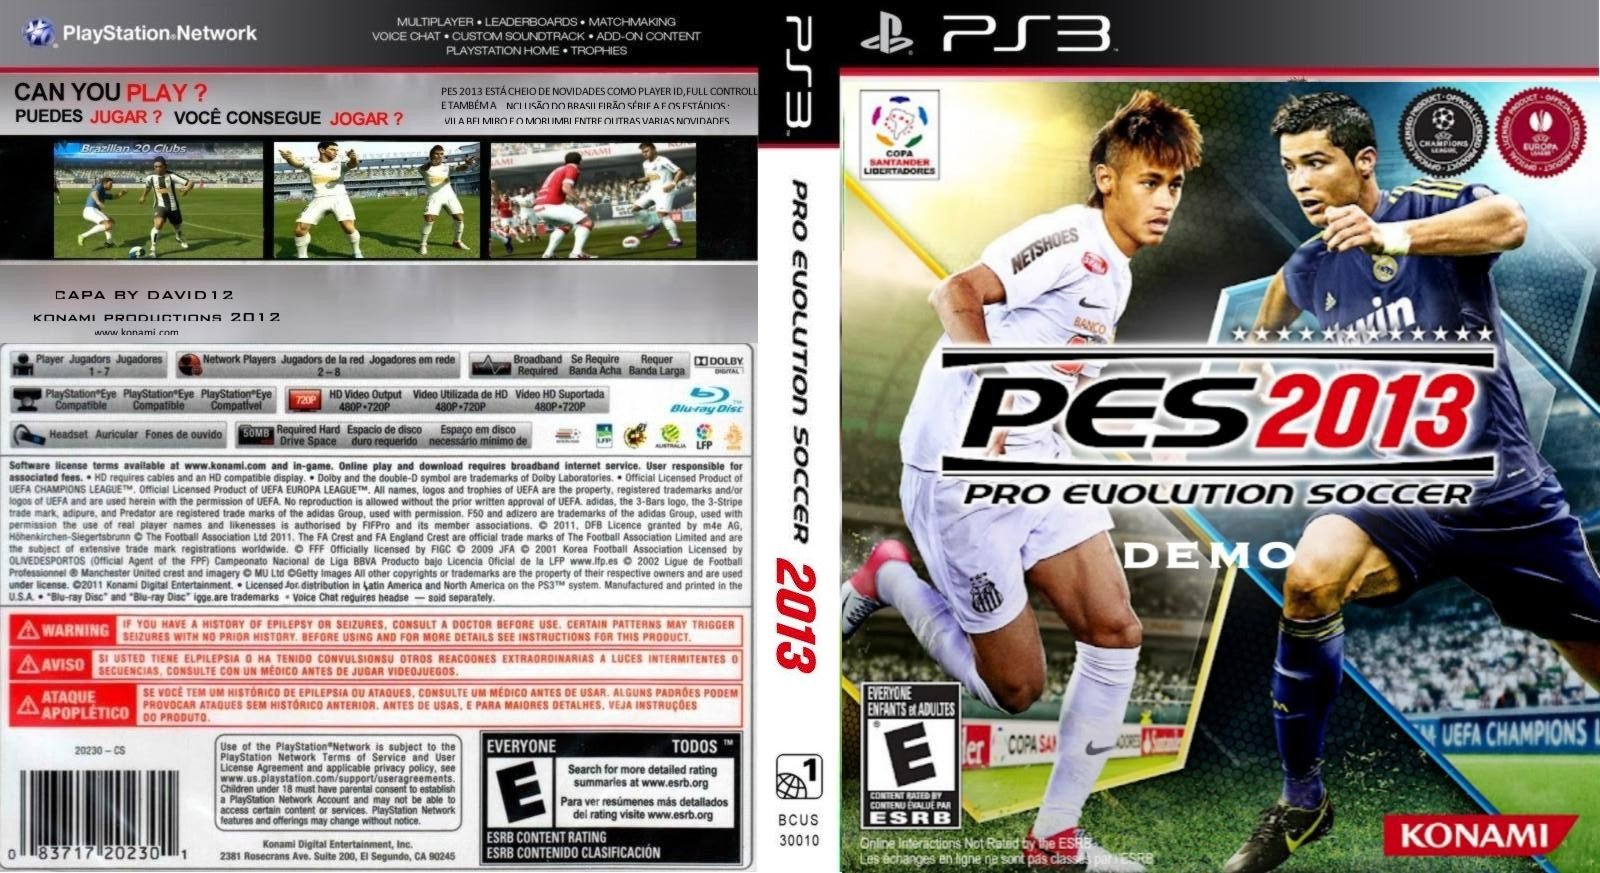 Baixar Games Gratuitos: Download Pro Evolution Soccer 2013 (PS3)